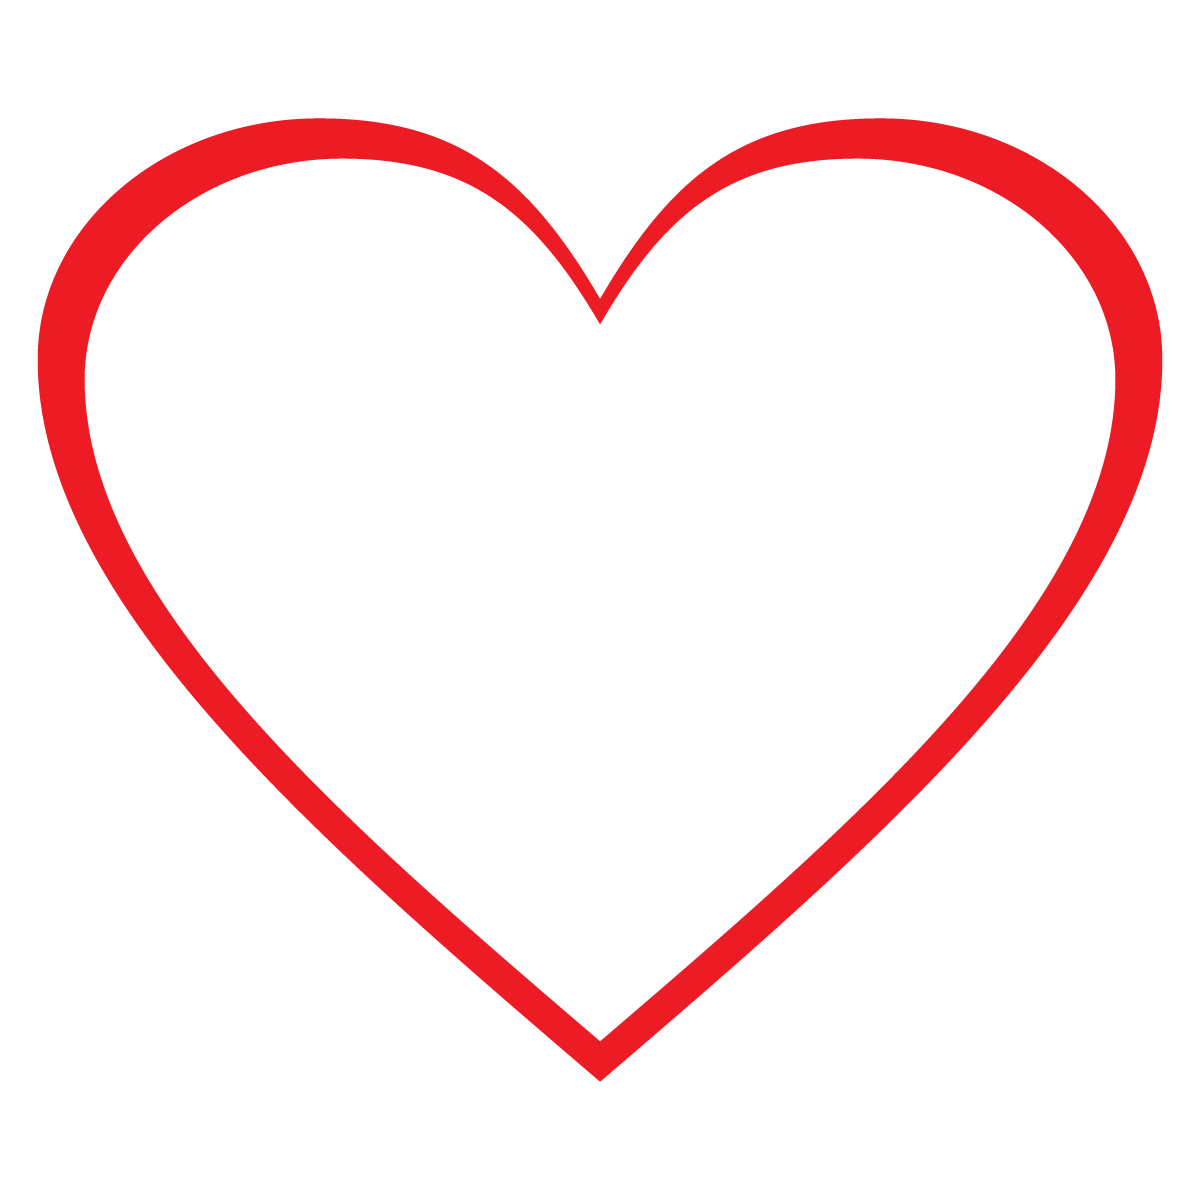 Heart clipart #8, Download drawings